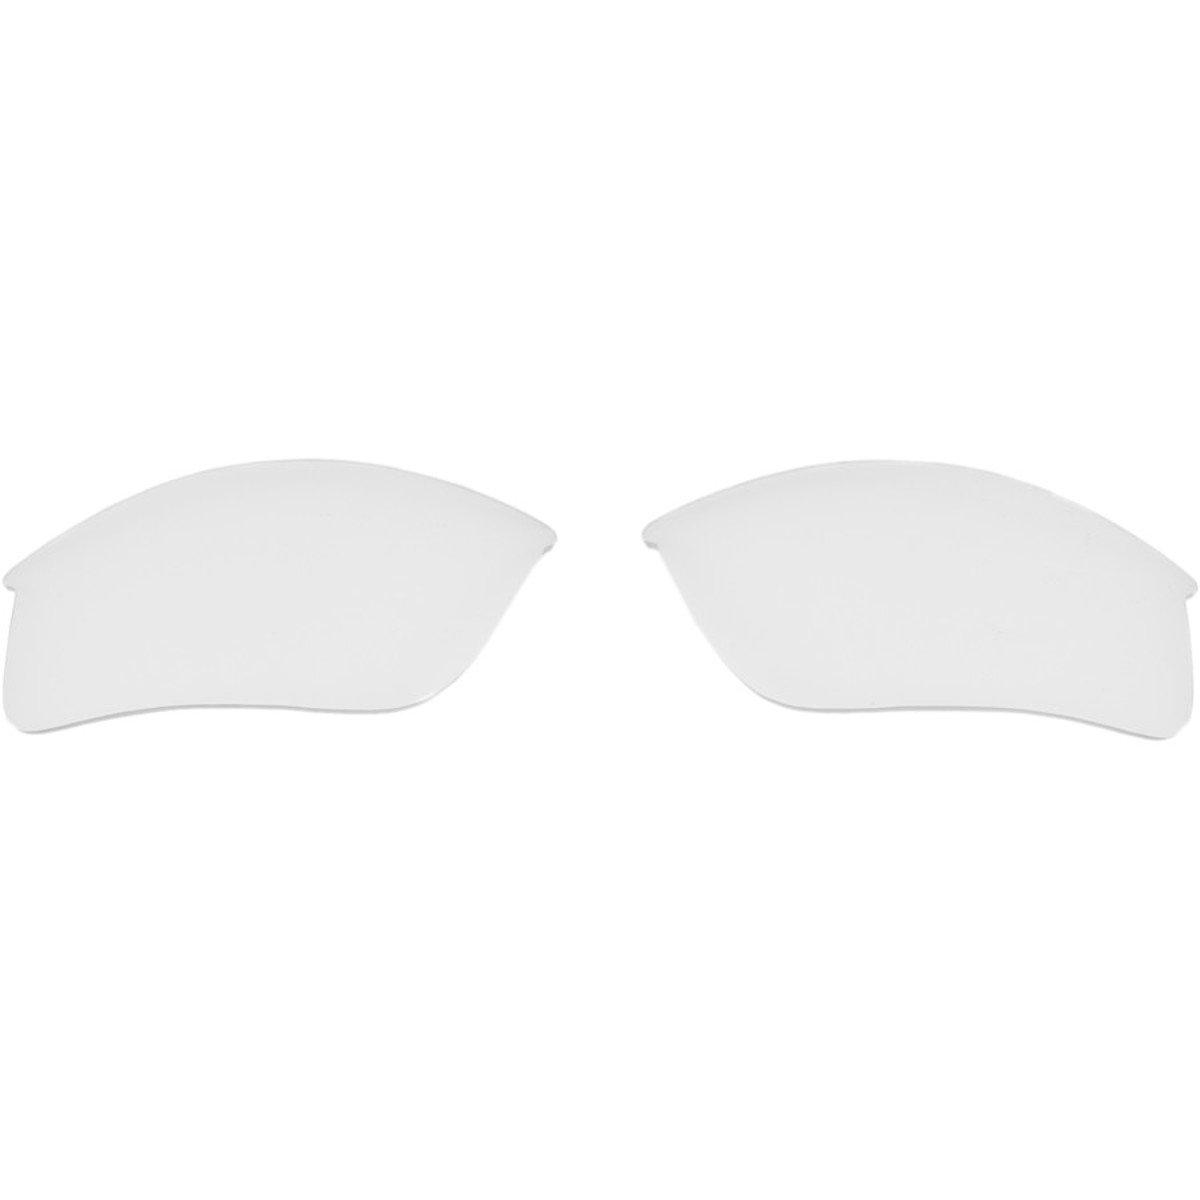 Native Eyewear Hardtop XP Sunglass Replacement Lens